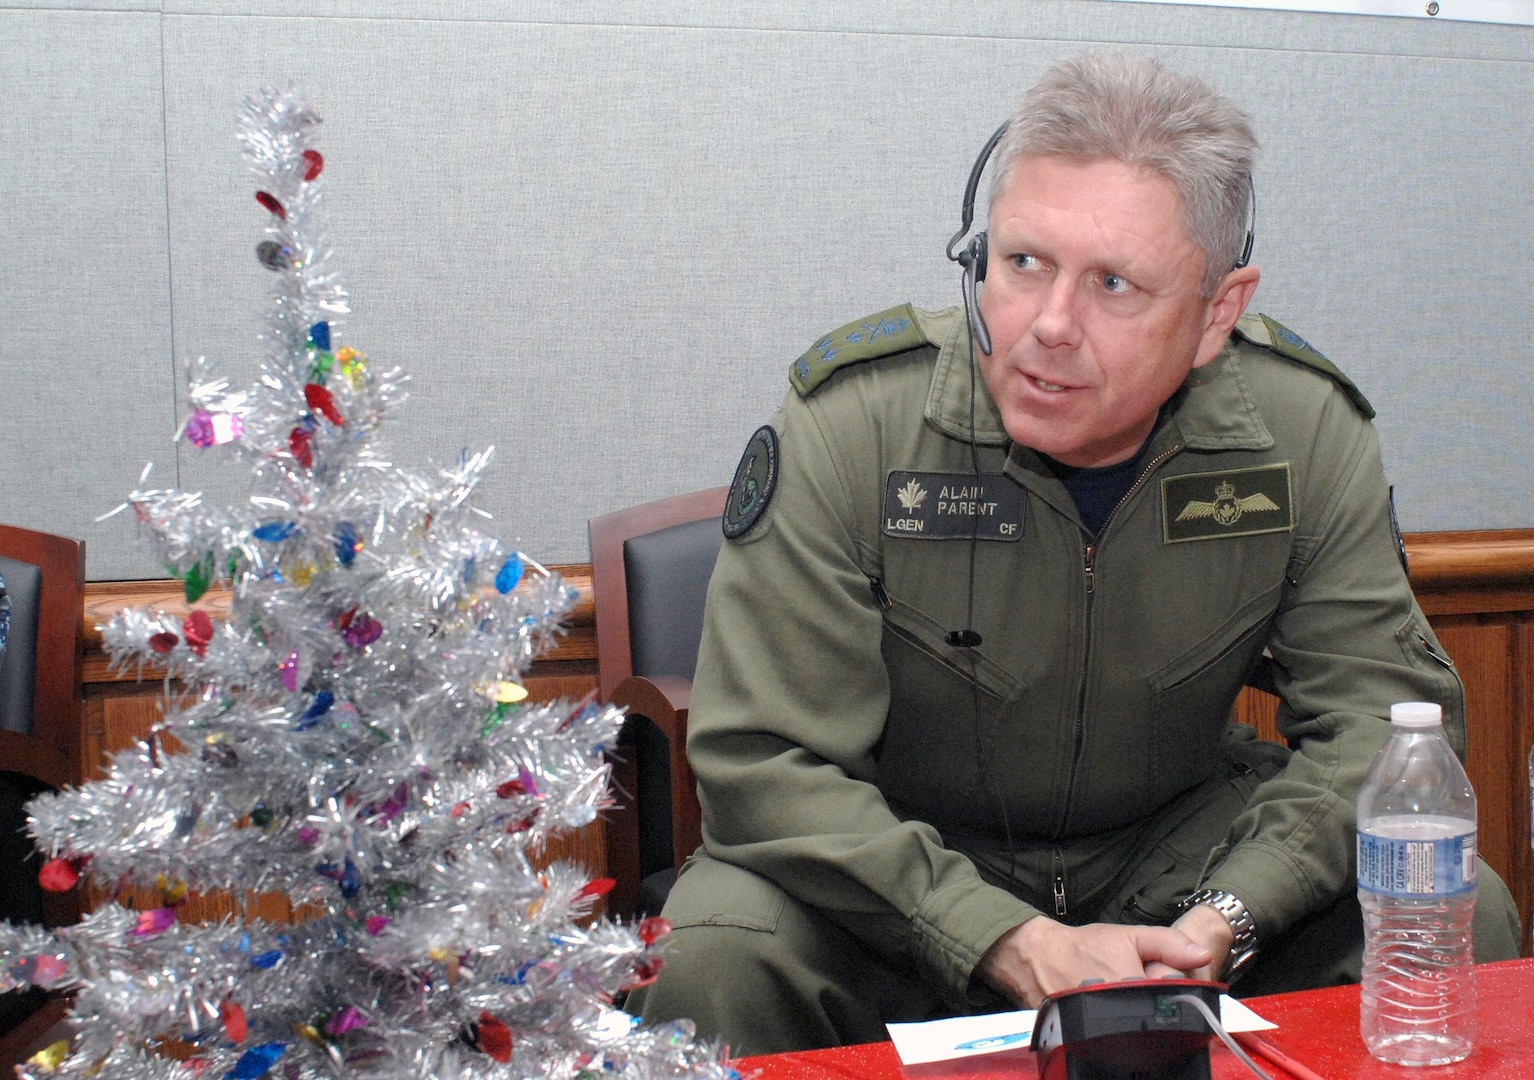 """PETERSON AIR FORCE BASE, Colo. - Canadian Lt.-Gen. Alain Parent, NORAD Deputy Commander, takes some calls at the NORAD Tracks Santa Operations Center Dec. 24, 2012. After this photo was posted on Facebook, a parent commented that their son had just spoken to someone named """"Parent' and that now her six-year-old was """"freaking out."""" (U.S. Air Force photo by Tech. Sgt. Thomas J. Doscher)"""